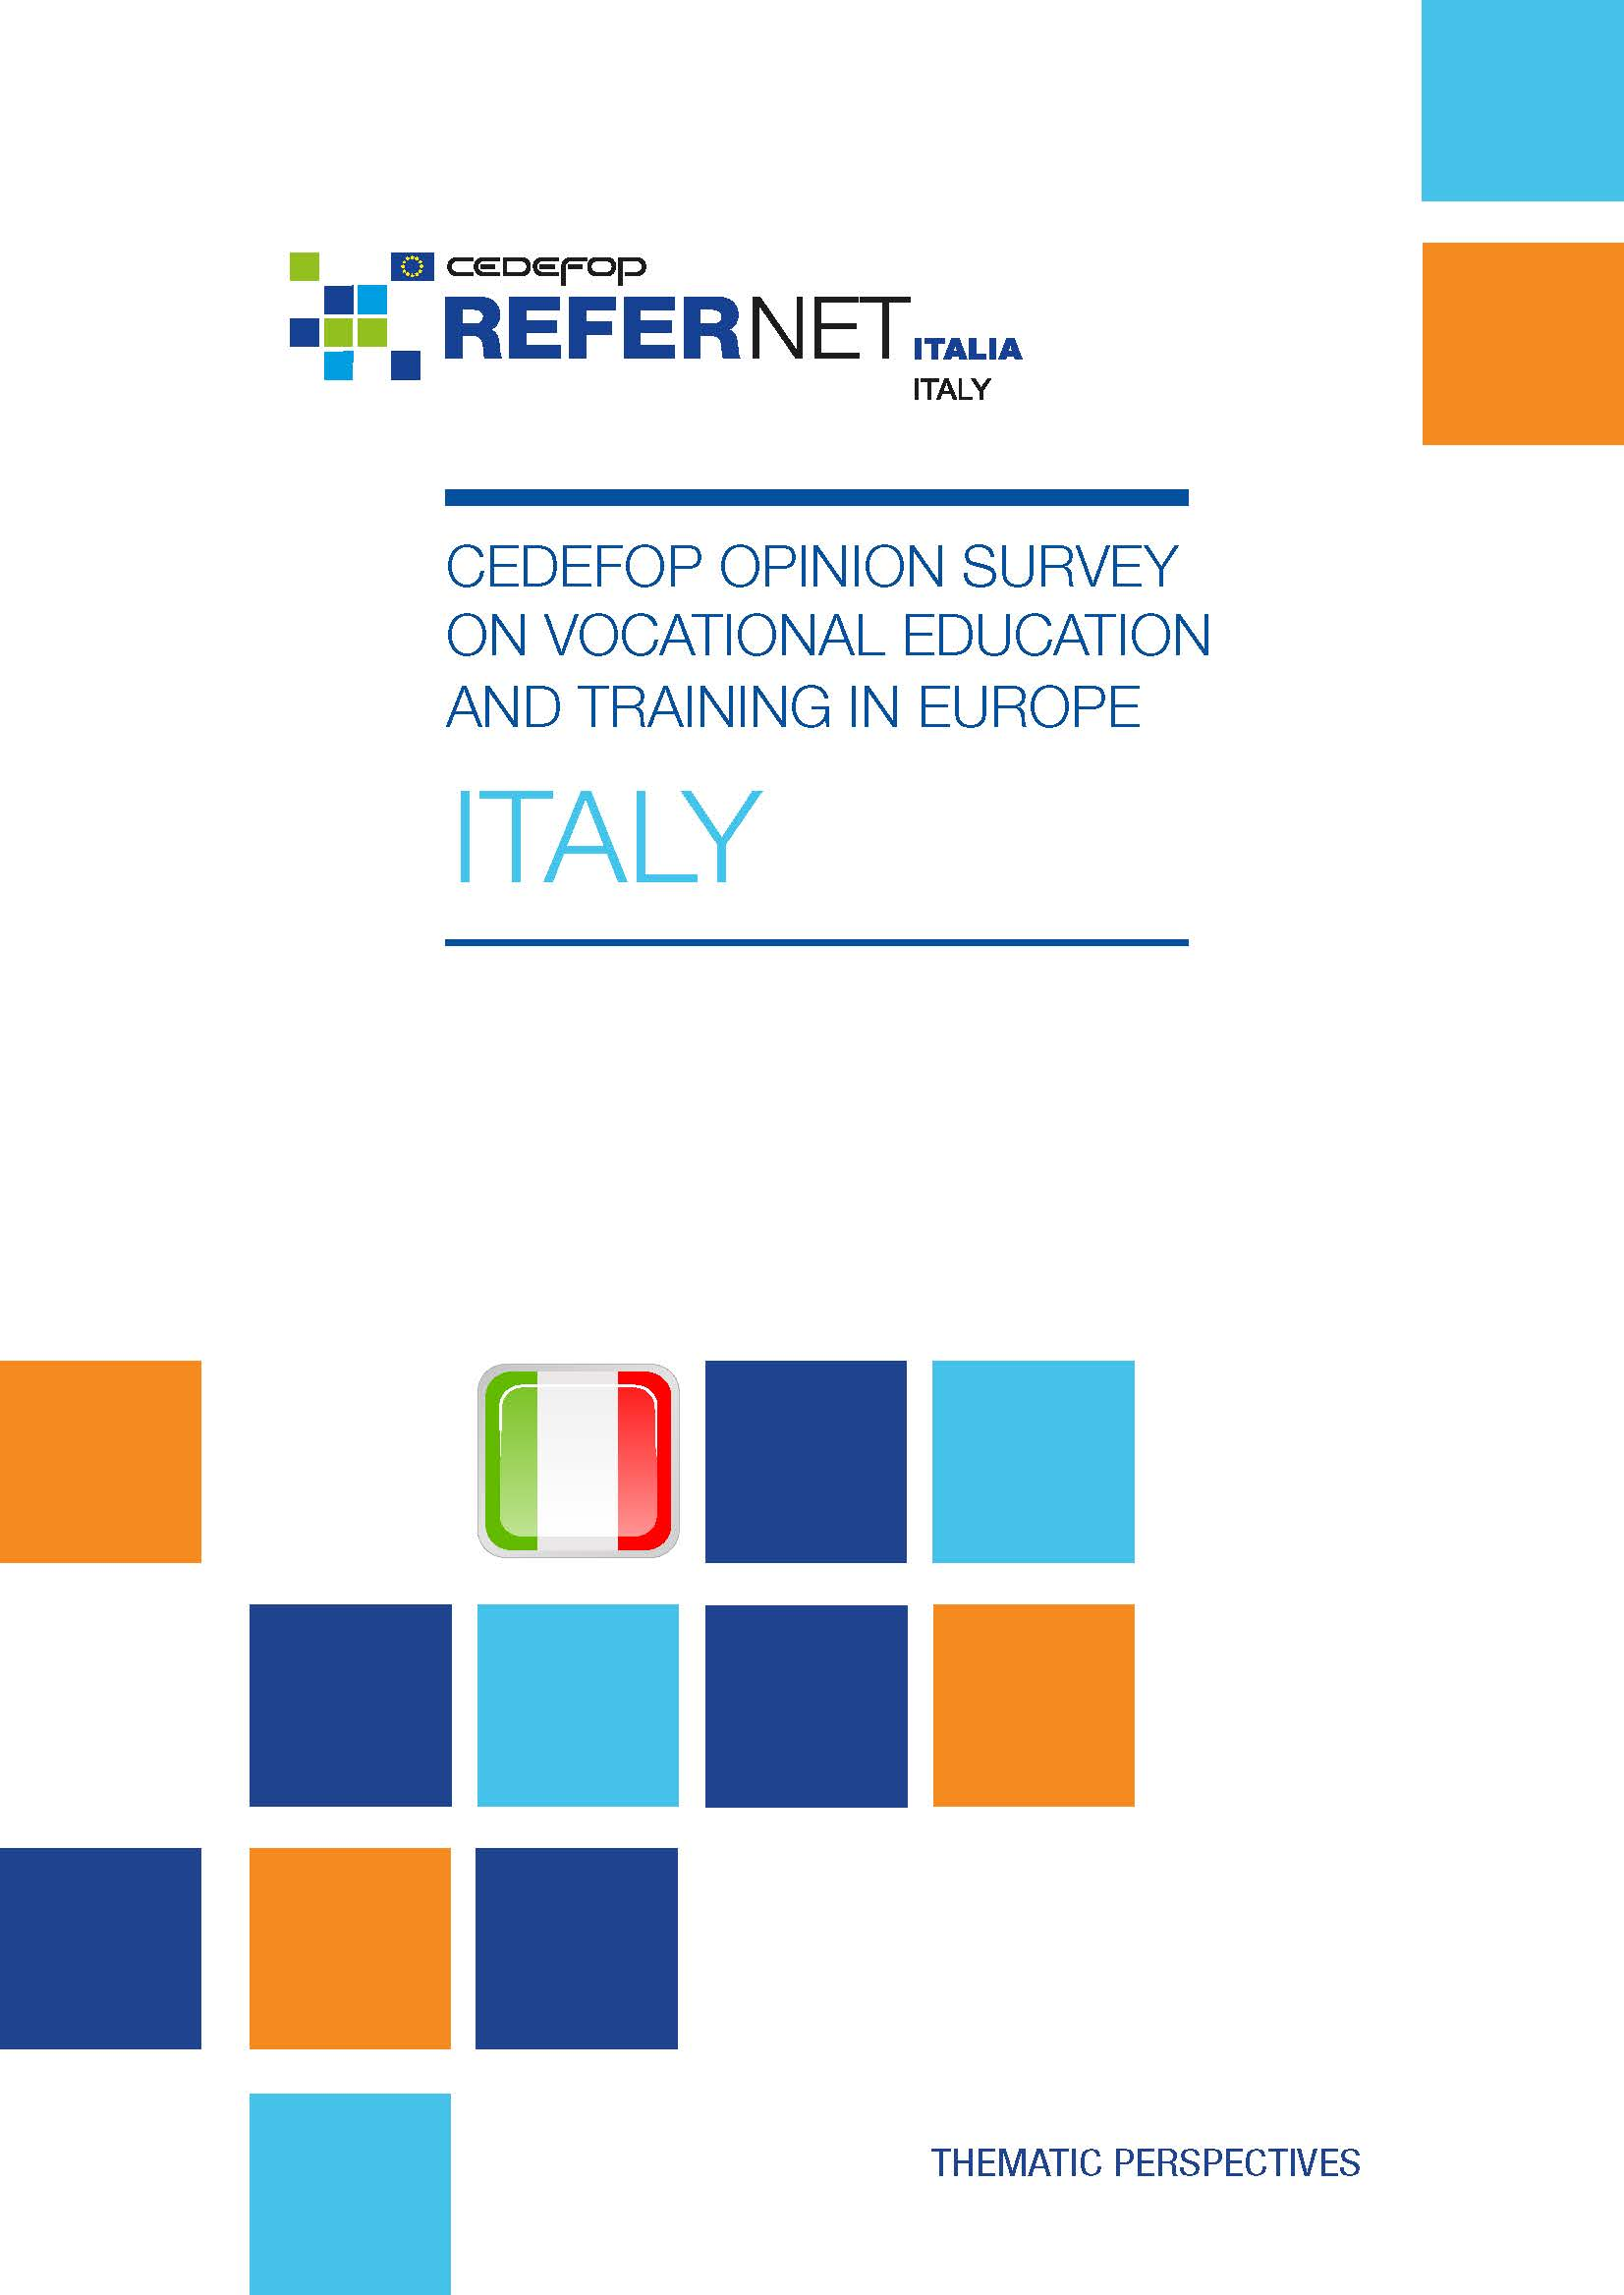 Cedefop public opinion survey on vocational education and training in Europe: Italy